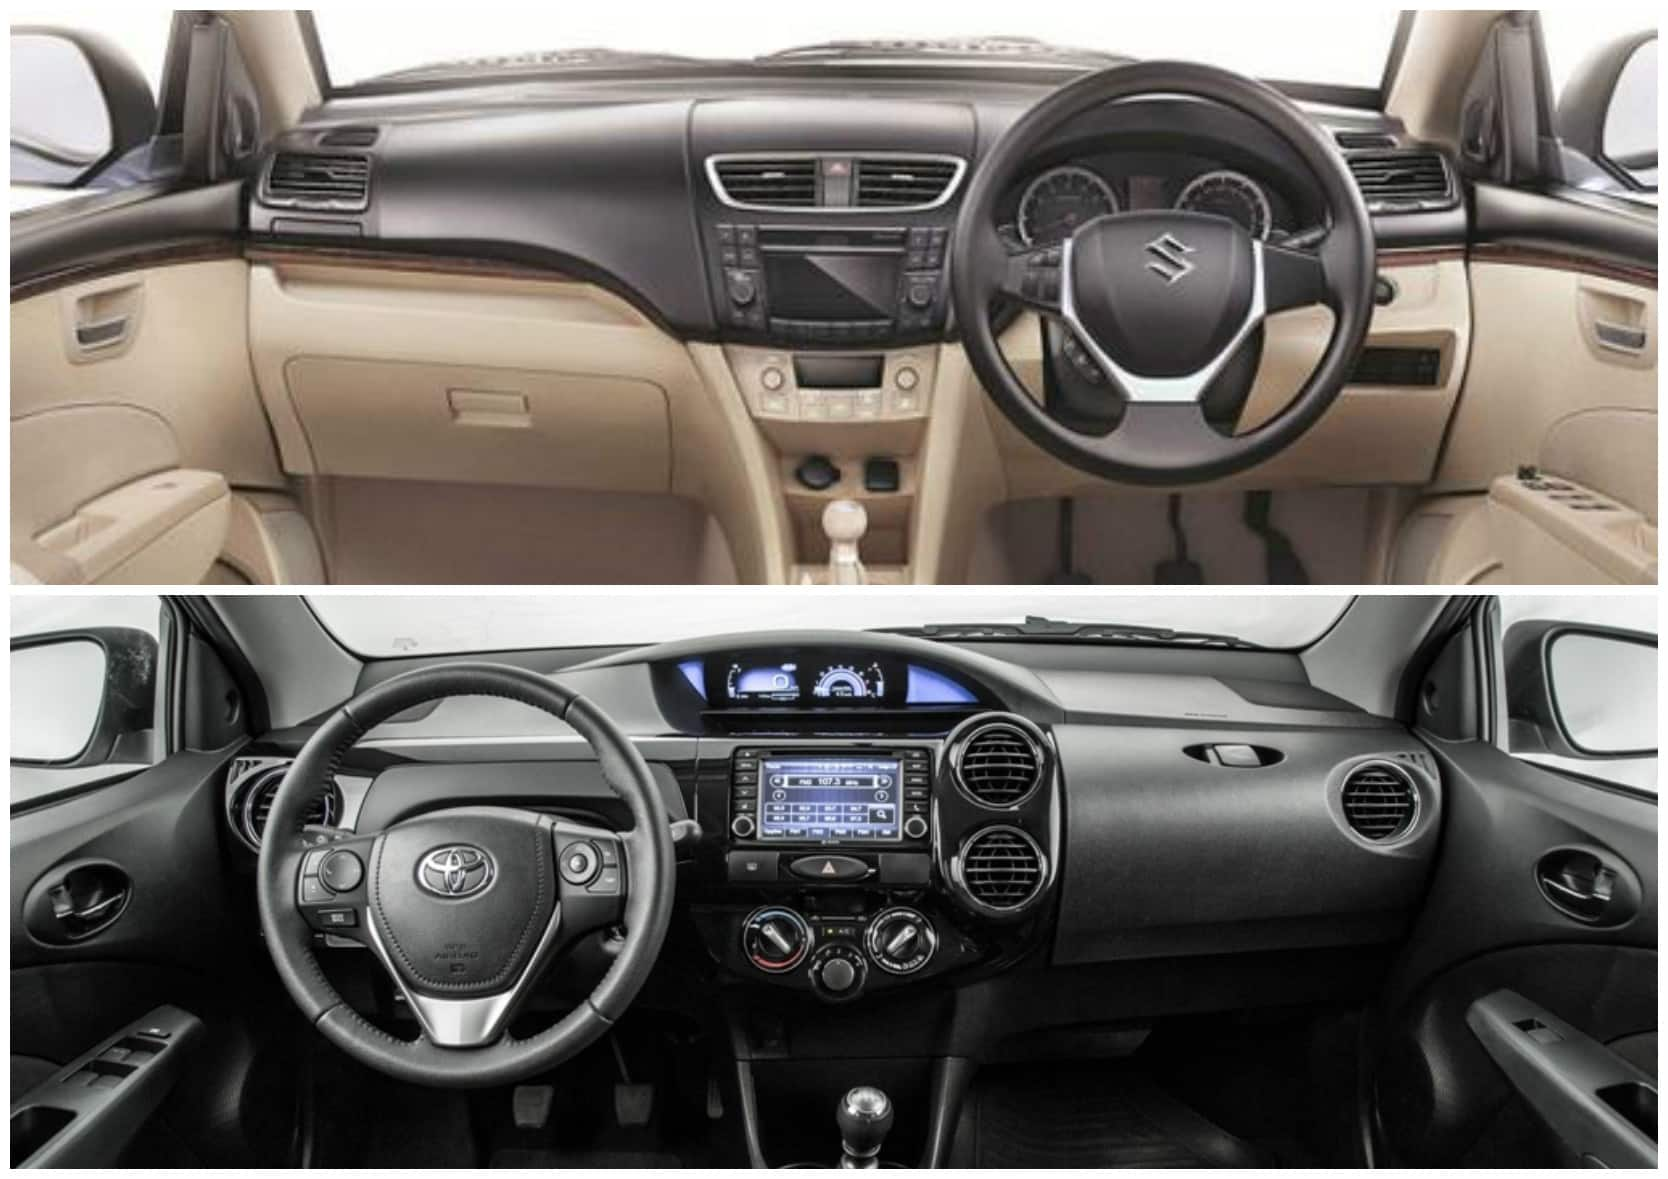 toyota etios sedan facelift vs maruti suzuki dzire comparison report find. Black Bedroom Furniture Sets. Home Design Ideas